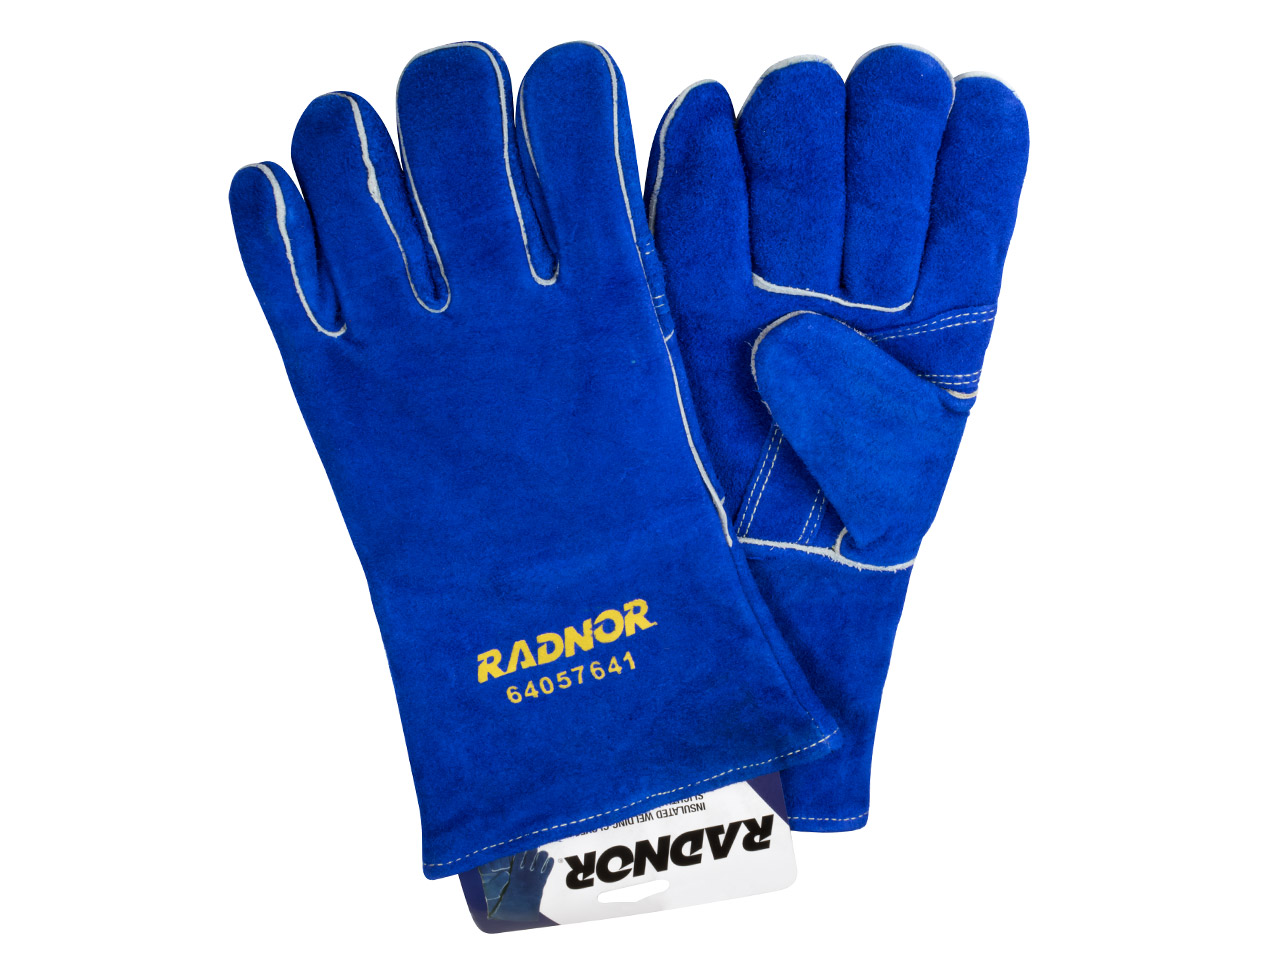 Radnor Heat-resistant Gloves Large